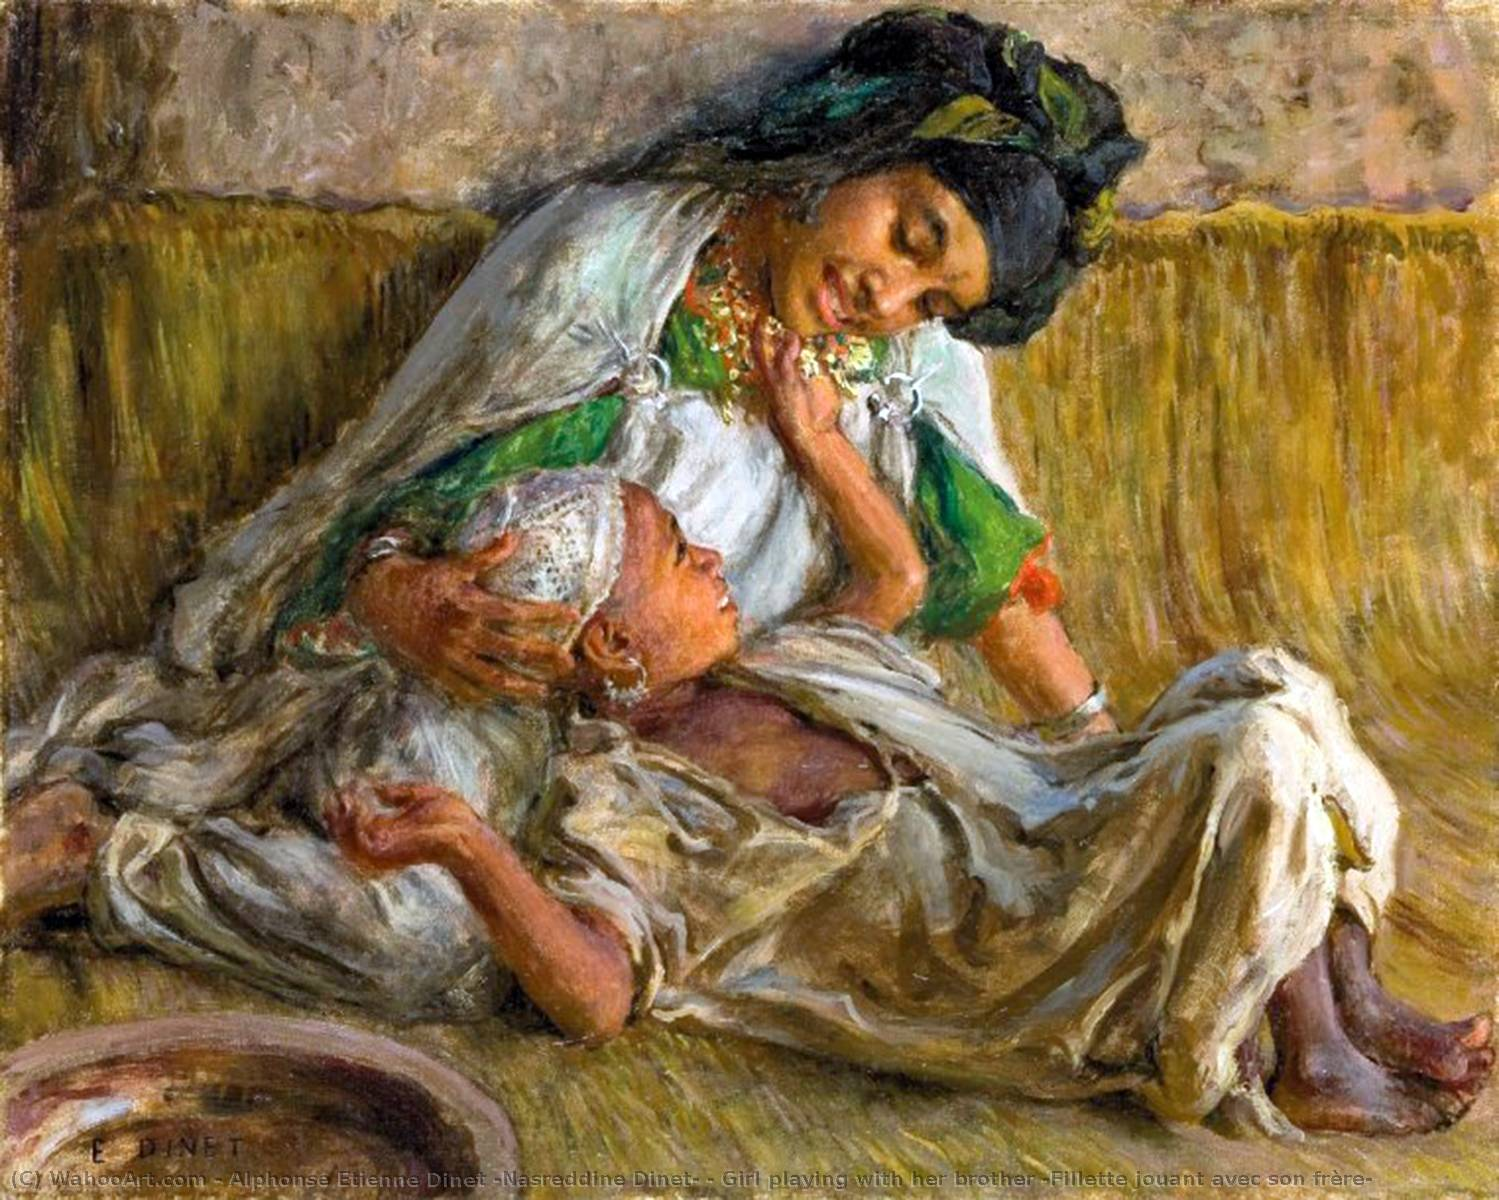 Girl playing with her brother (Fillette jouant avec son frère) by Alphonse Etienne Dinet (Nasreddine Dinet) (1861-1929) | Reproductions Alphonse Etienne Dinet (Nasreddine Dinet) | WahooArt.com